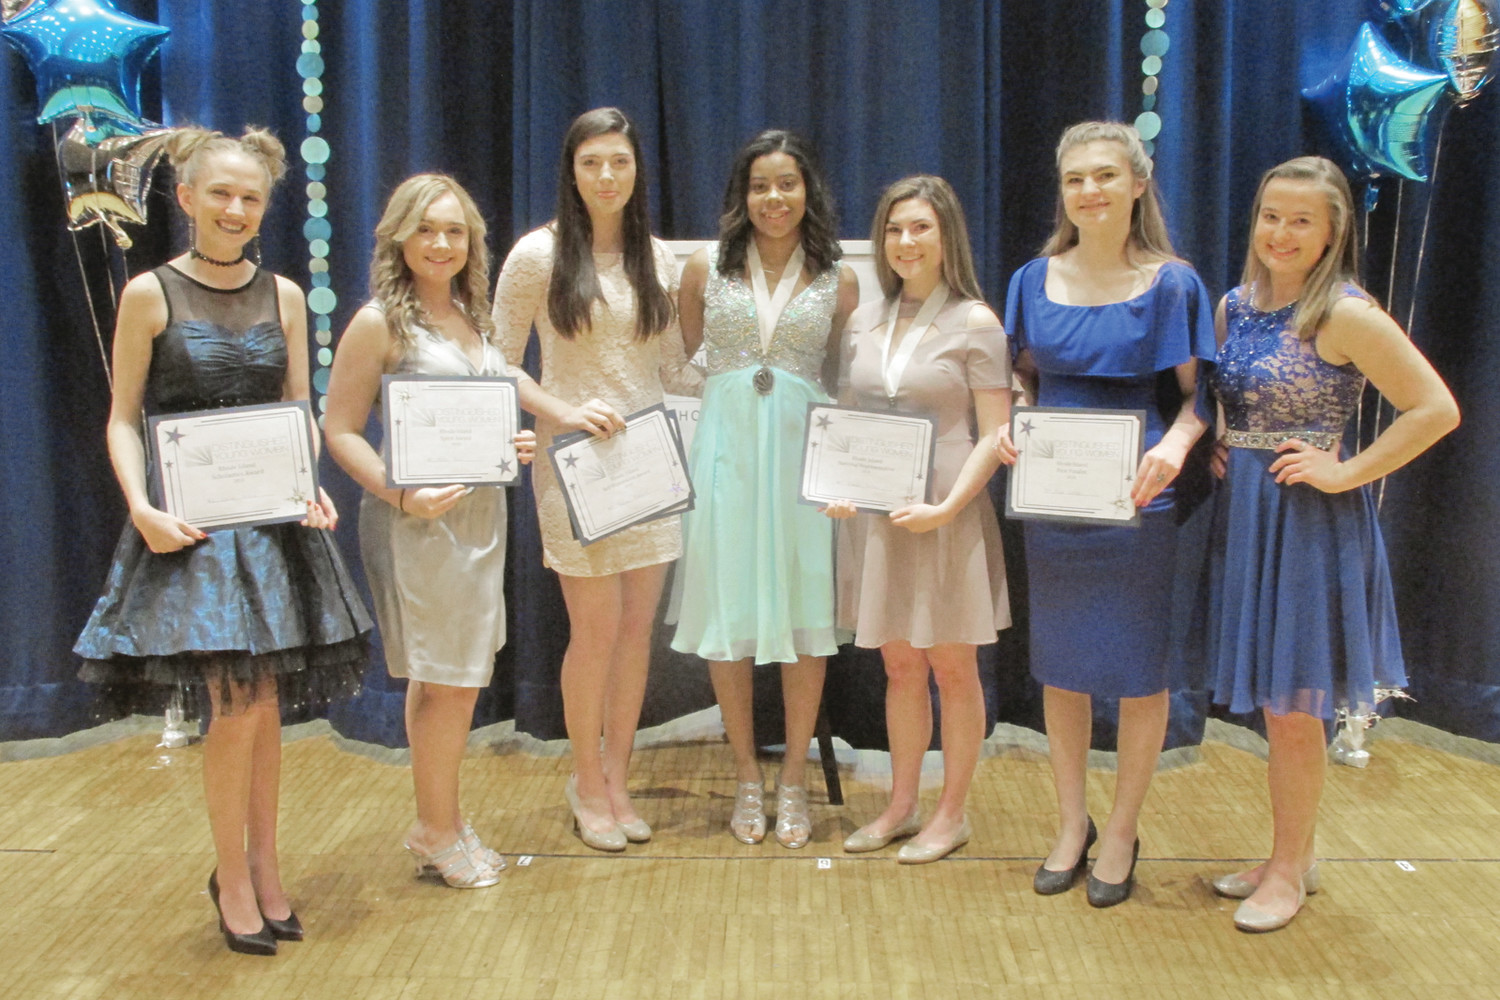 FINALISTS: Tiffany Brooks (center), the 2017 Distinguished Young Women winner, is joined by 2018 finalists Lacy Griffin (left), Exeter-West Greenwich High; Fallon Davis, Johnston High; Madison Freeborn, Scituate High; Viansi Portesi, La Salle; Kaya Giroux, Jacqueline M. Walsh Scholl for the Arts; and Emily Johnston, West Warwick High. (Sun Rise photo by Pete Fontaine)